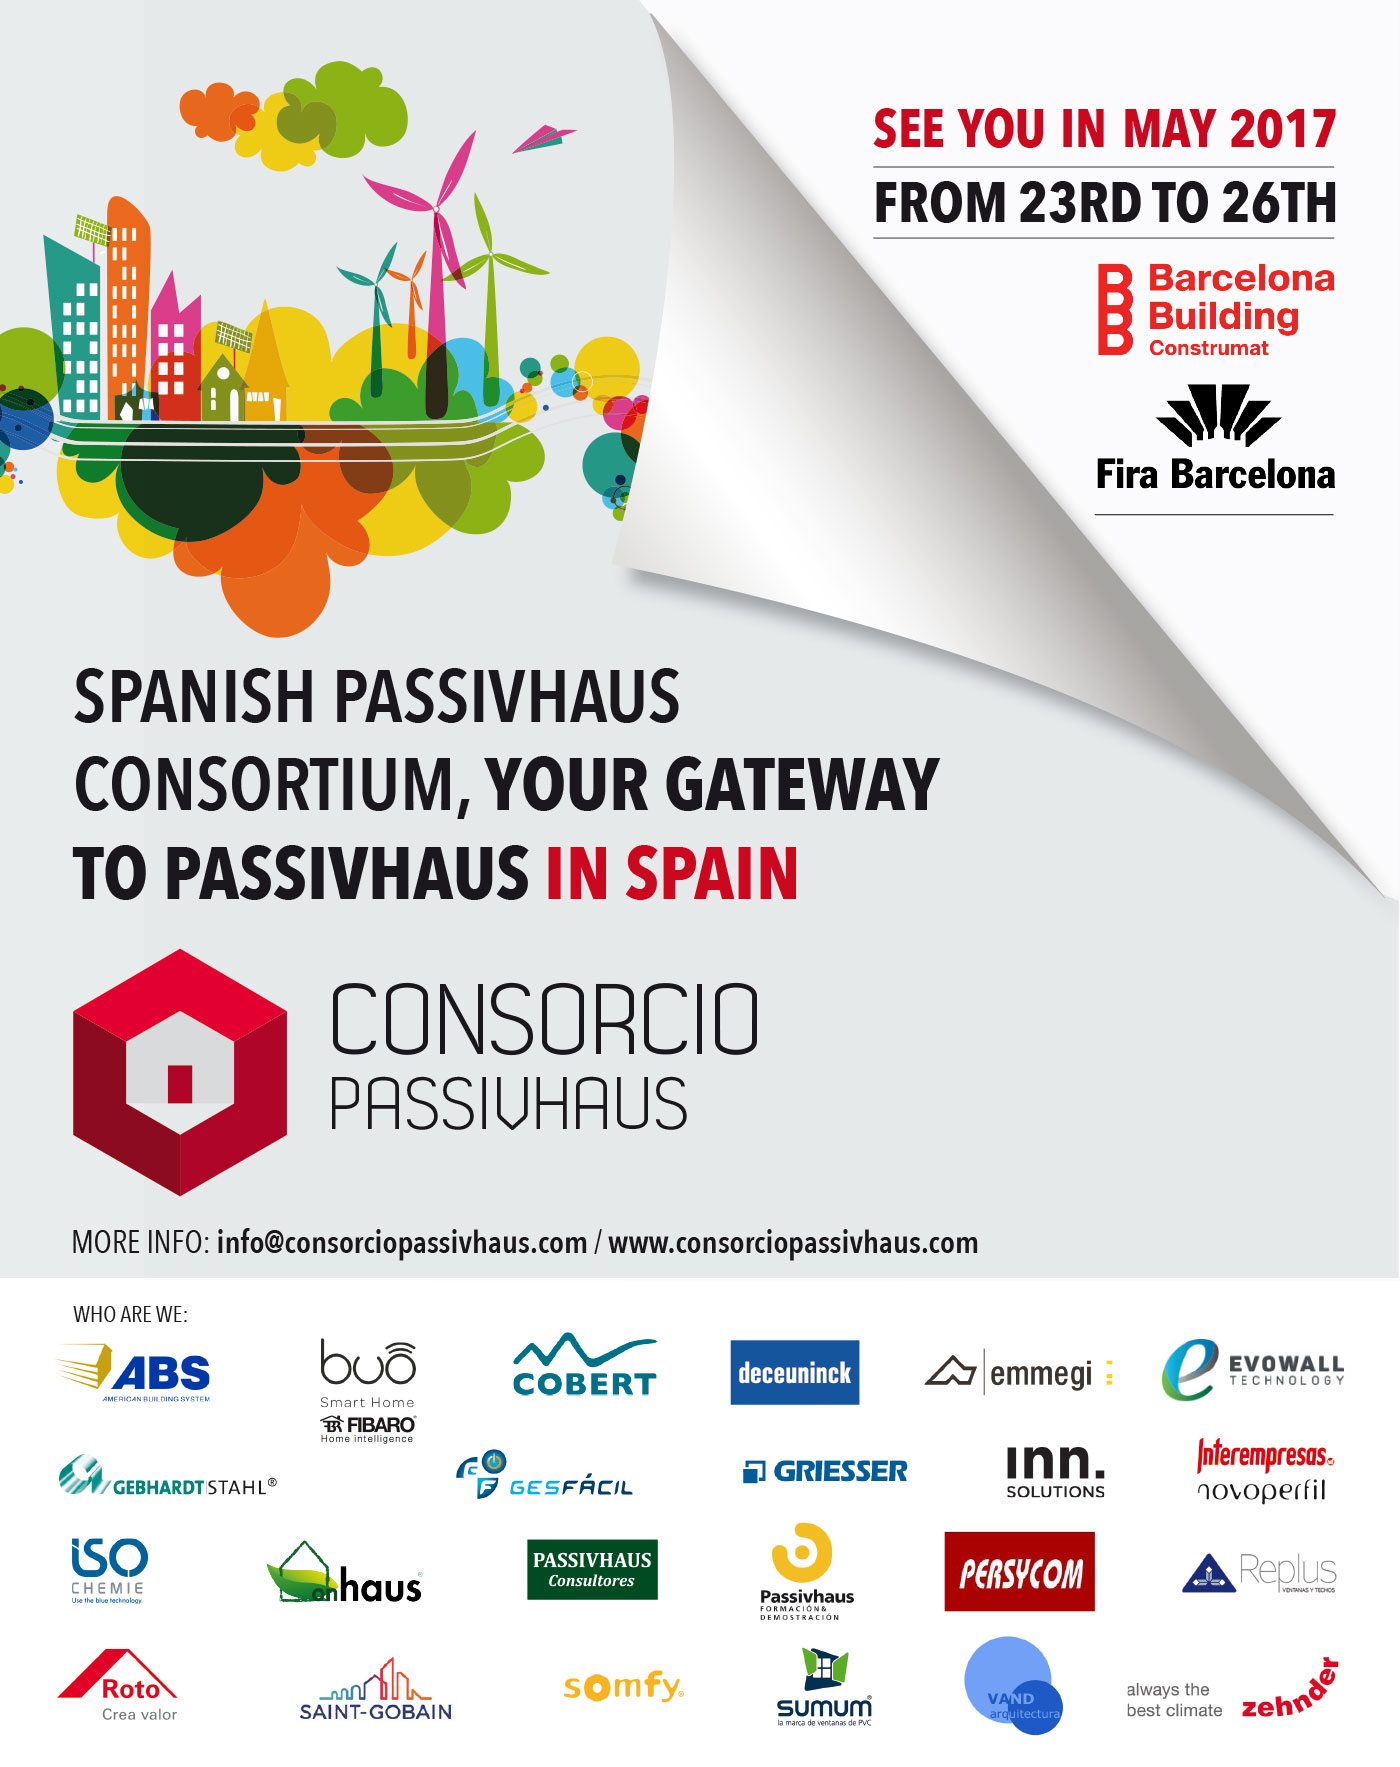 SPANISH PASSIVHAUS CONSORTIUM, YOUR GATEWAY TO PASSIVHAUS IN SPAIN